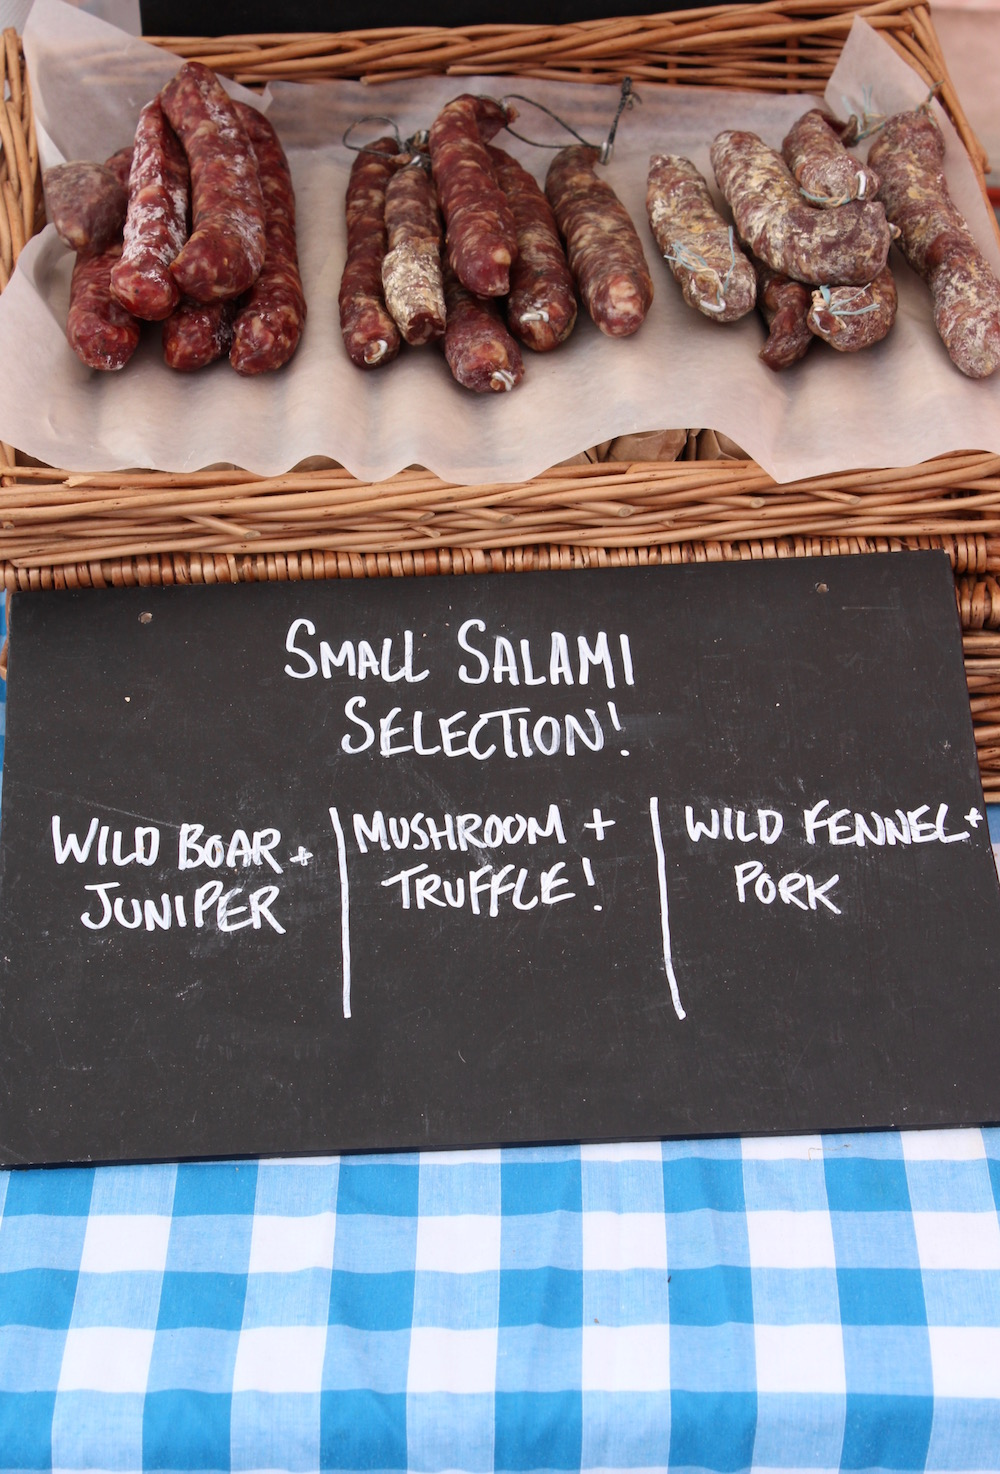 Southbank food market salami